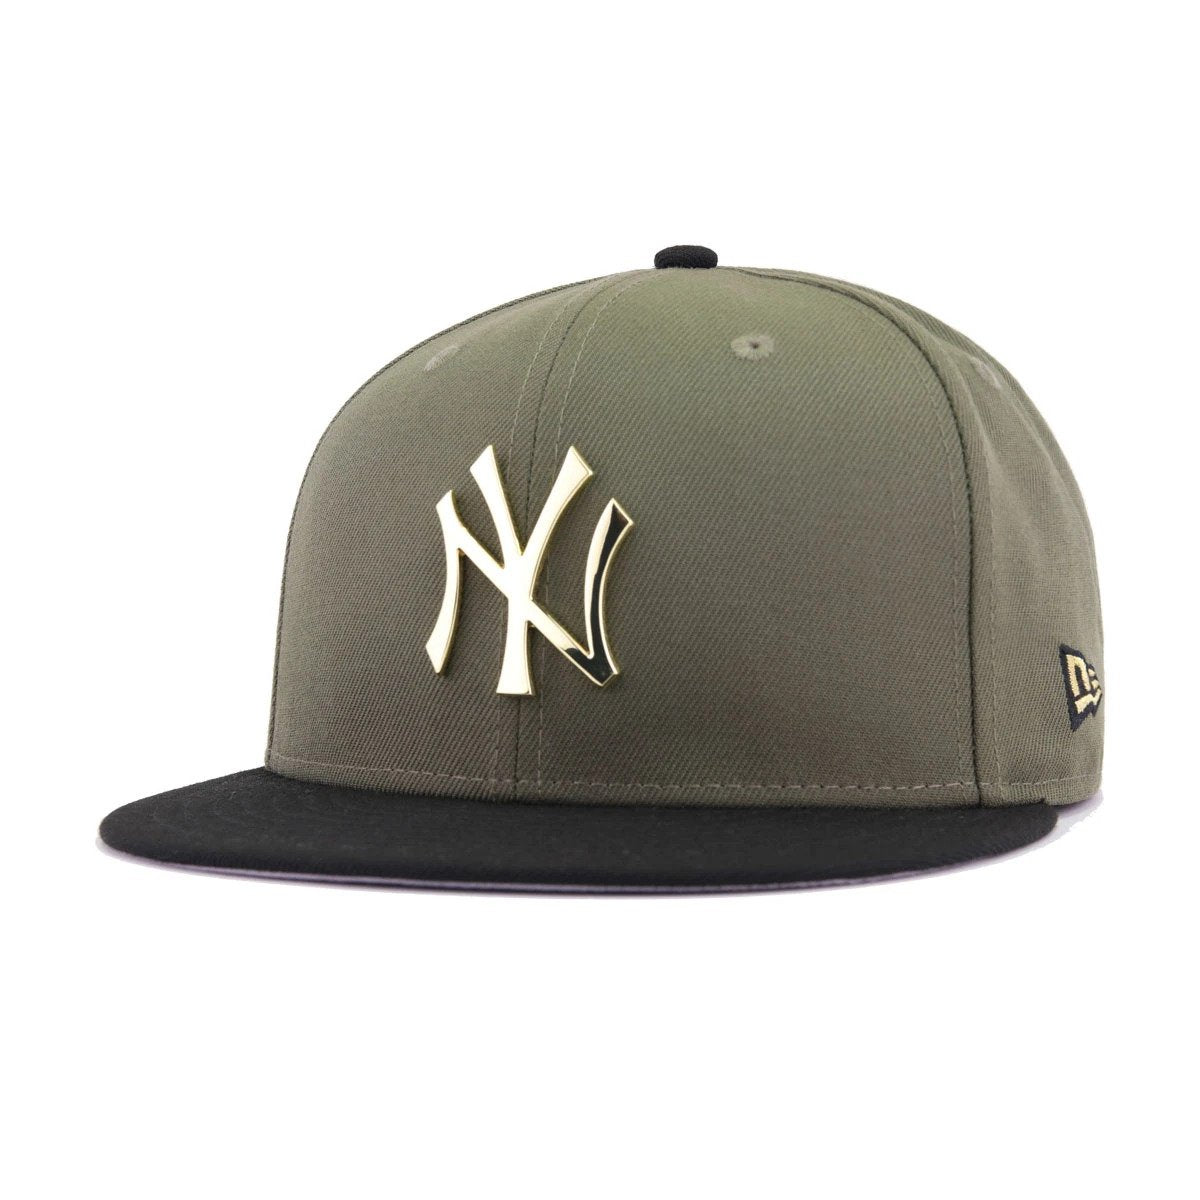 ff4a80dc252 New York Yankees New Olive Black Gold Metal Badge New Era 9Fifty Snapback